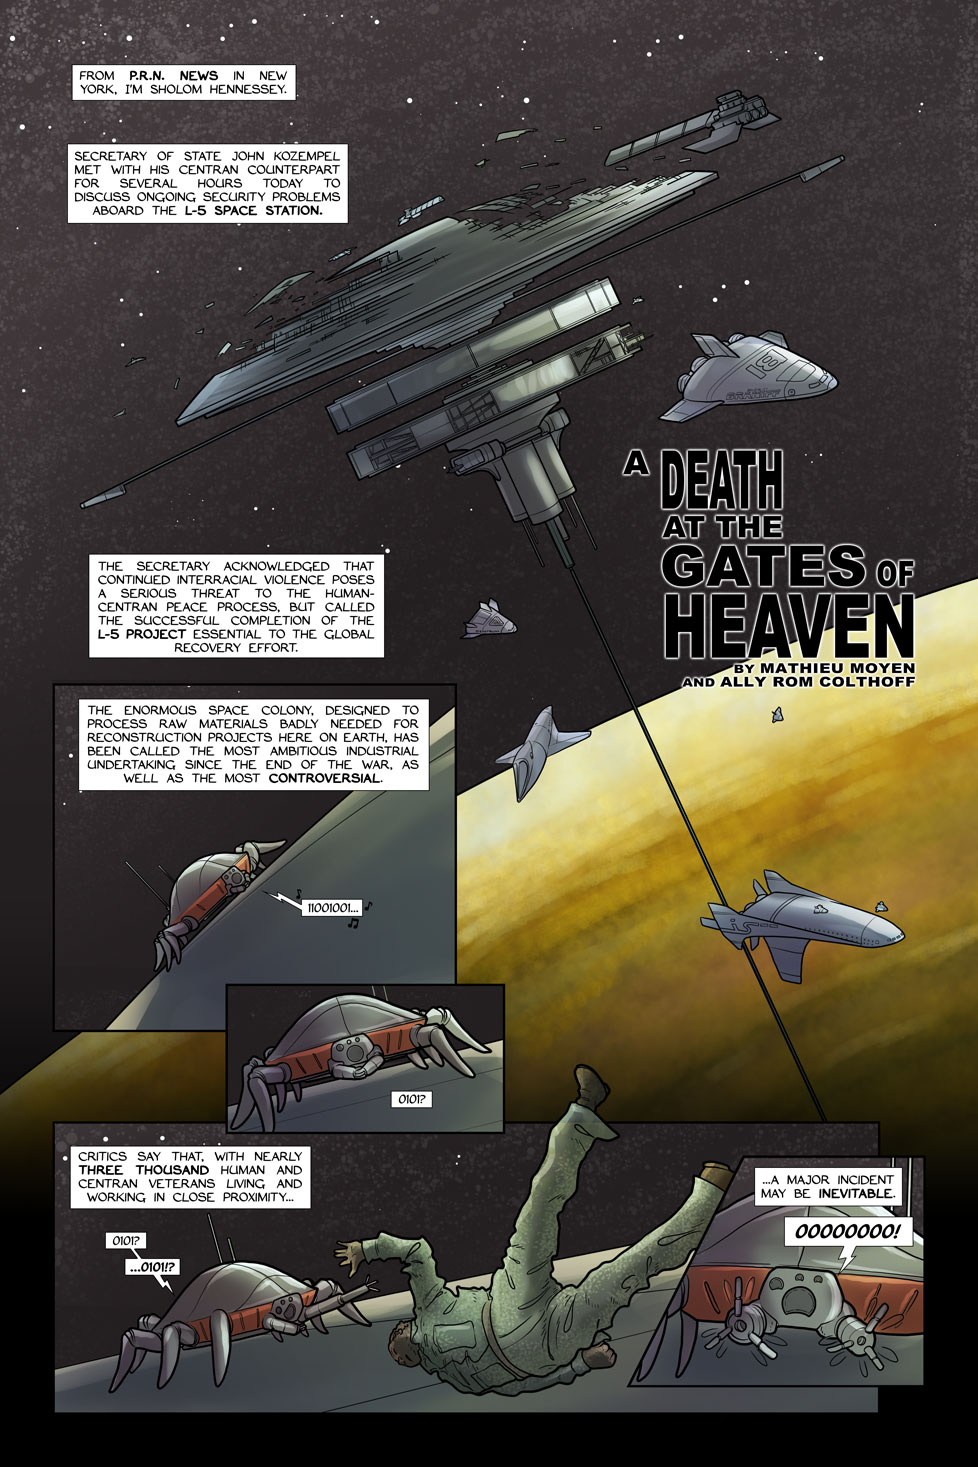 A Death at the Gates of Heaven – Page 1